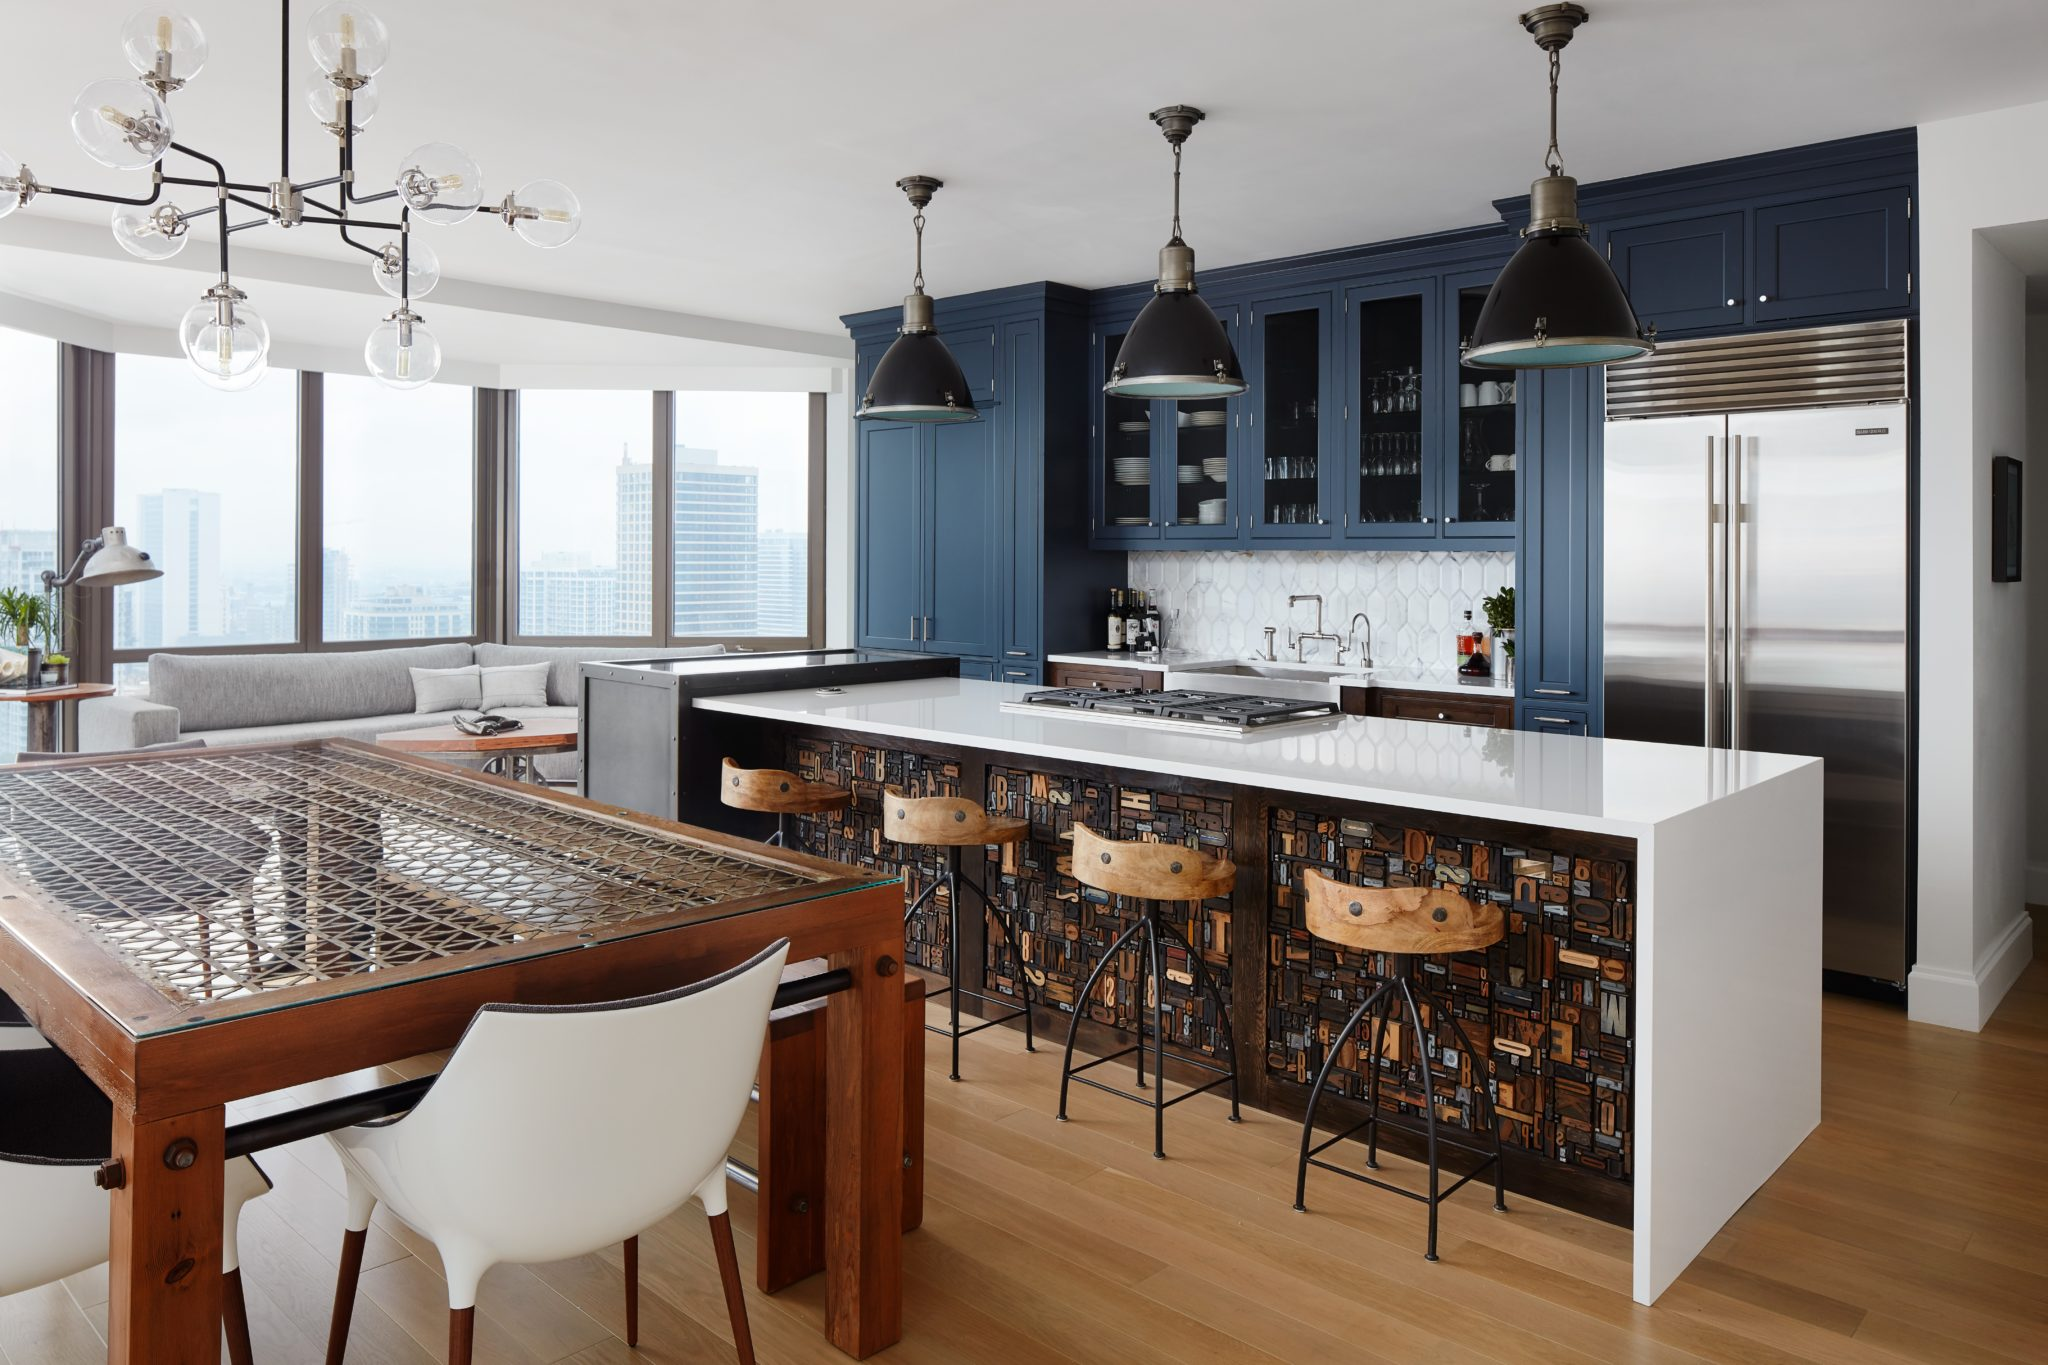 Mathematician's Downtown Penthouse Kitchen - Conversation Starter Unique Island by Inspired Interiors